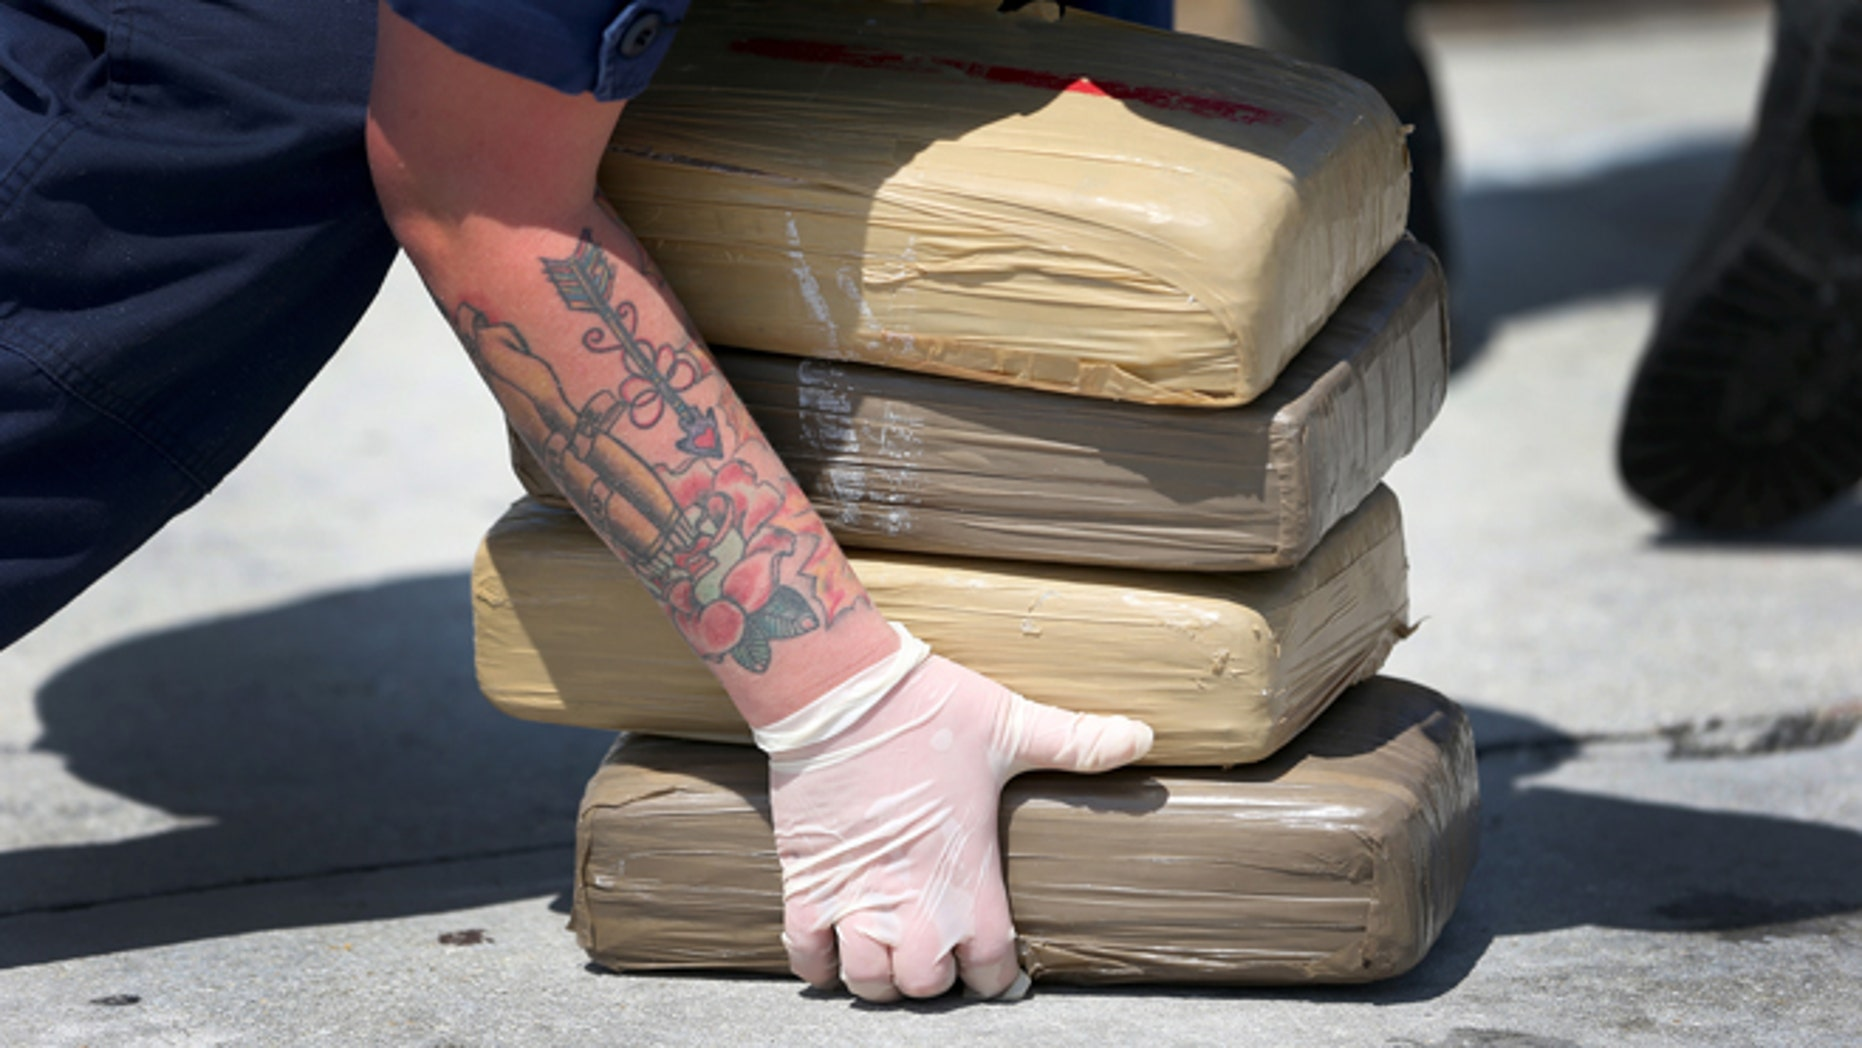 MIAMI BEACH, FL - MAY 09:  A U.S. Coast Guard crew member off loads blocks of marijuana from the Paul Clark one of the Coast Guard's newest fast-response cutters on May 9, 2014 in Miami Beach, Florida.  The U.S. Coast Guard used two of the new fast-response cutters to seize the more than $3 million in drugs earlier this month on the Caribbean Sea in separate interdictions just a day apart from each other.  (Photo by Joe Raedle/Getty Images)